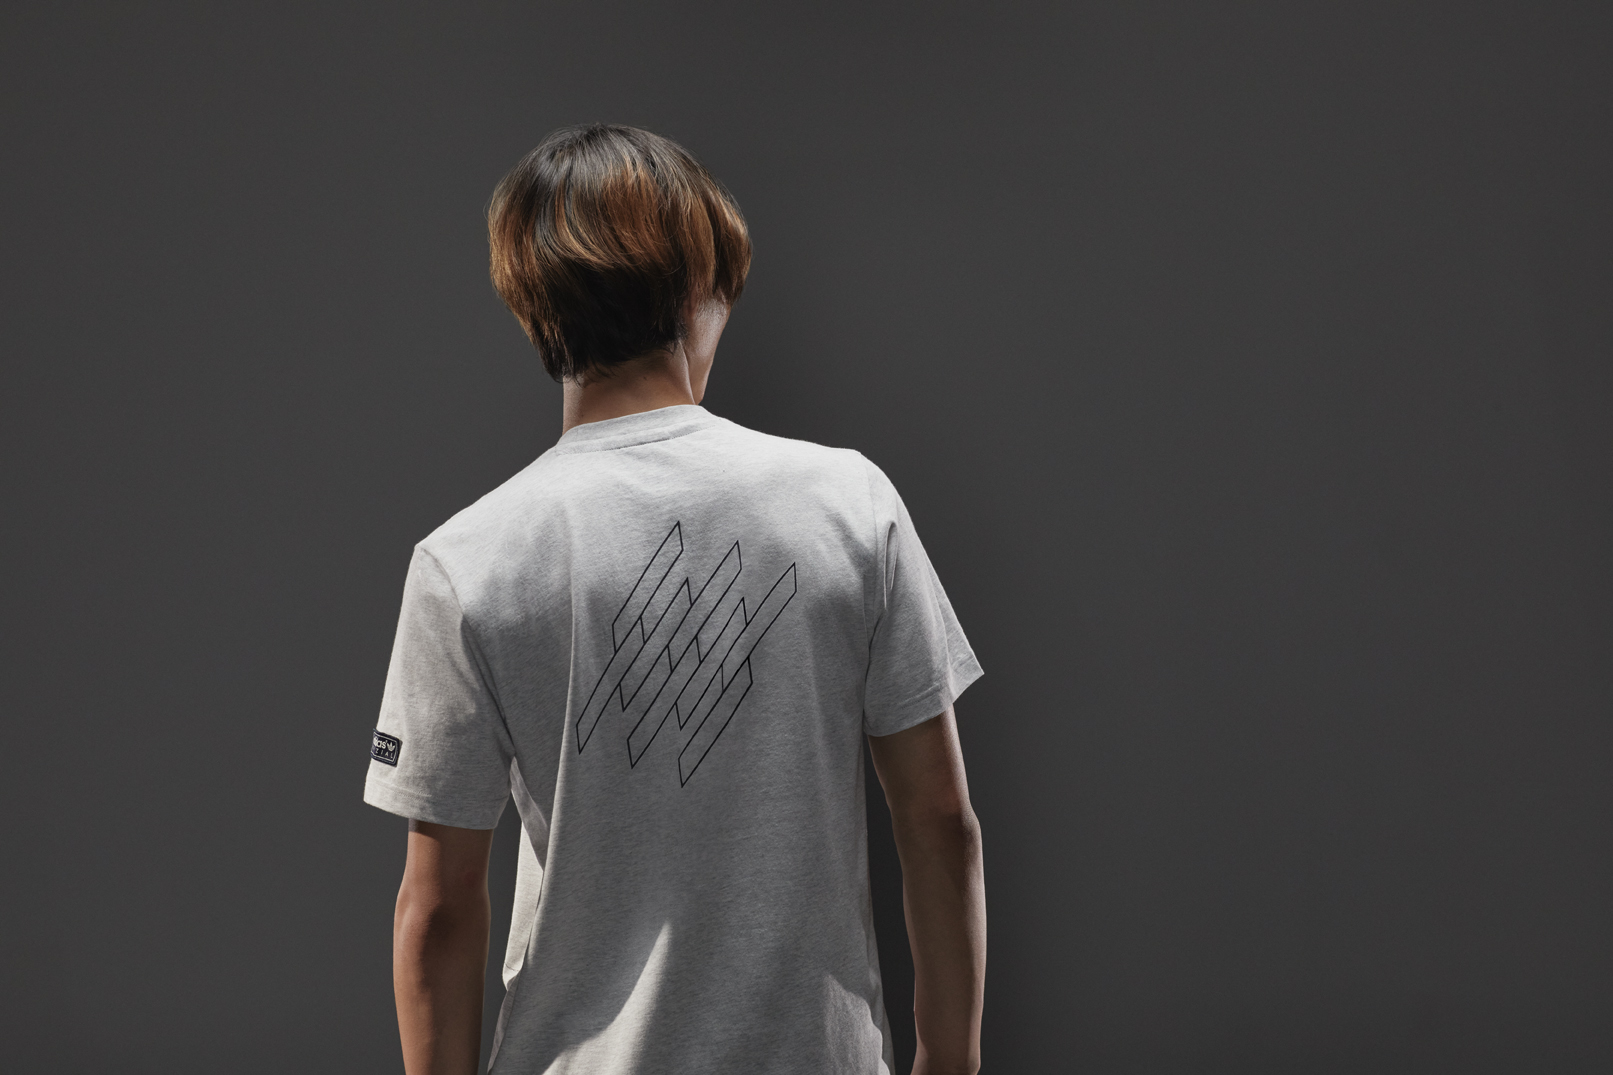 adidas spezial new order t-shirt